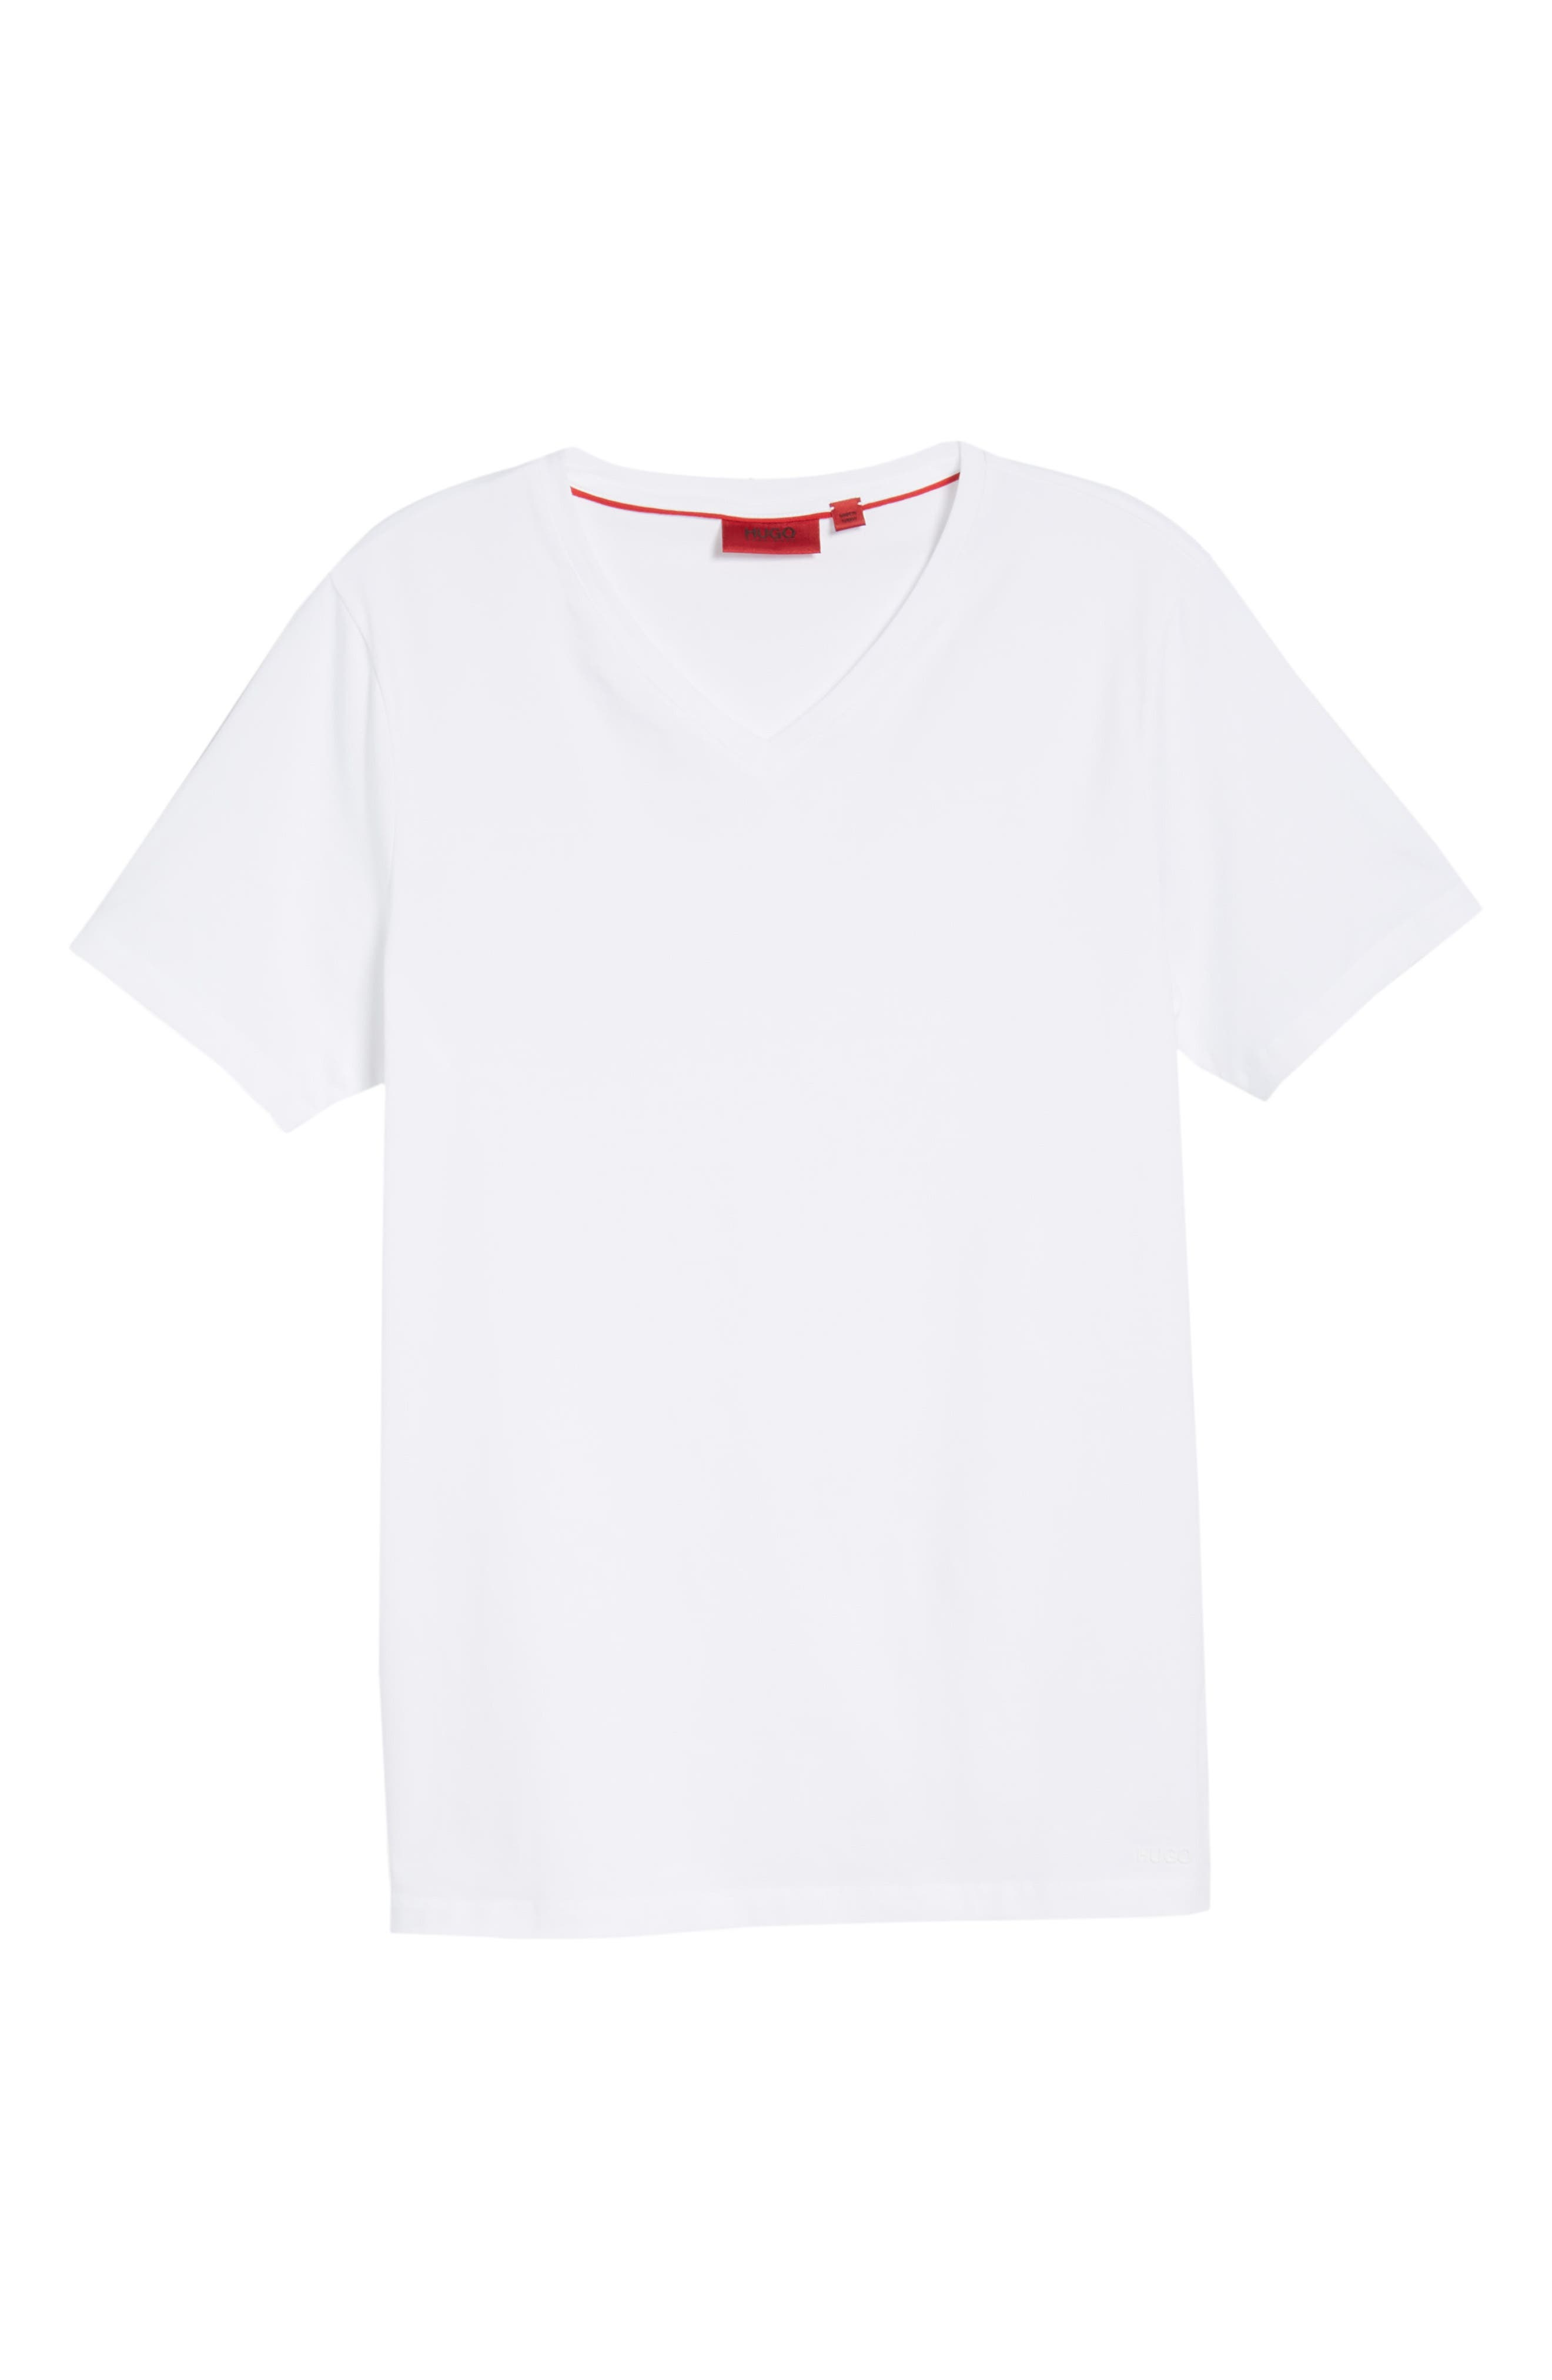 HUGO Dandre Slim Fit V-Neck T-Shirt,                             Alternate thumbnail 6, color,                             White